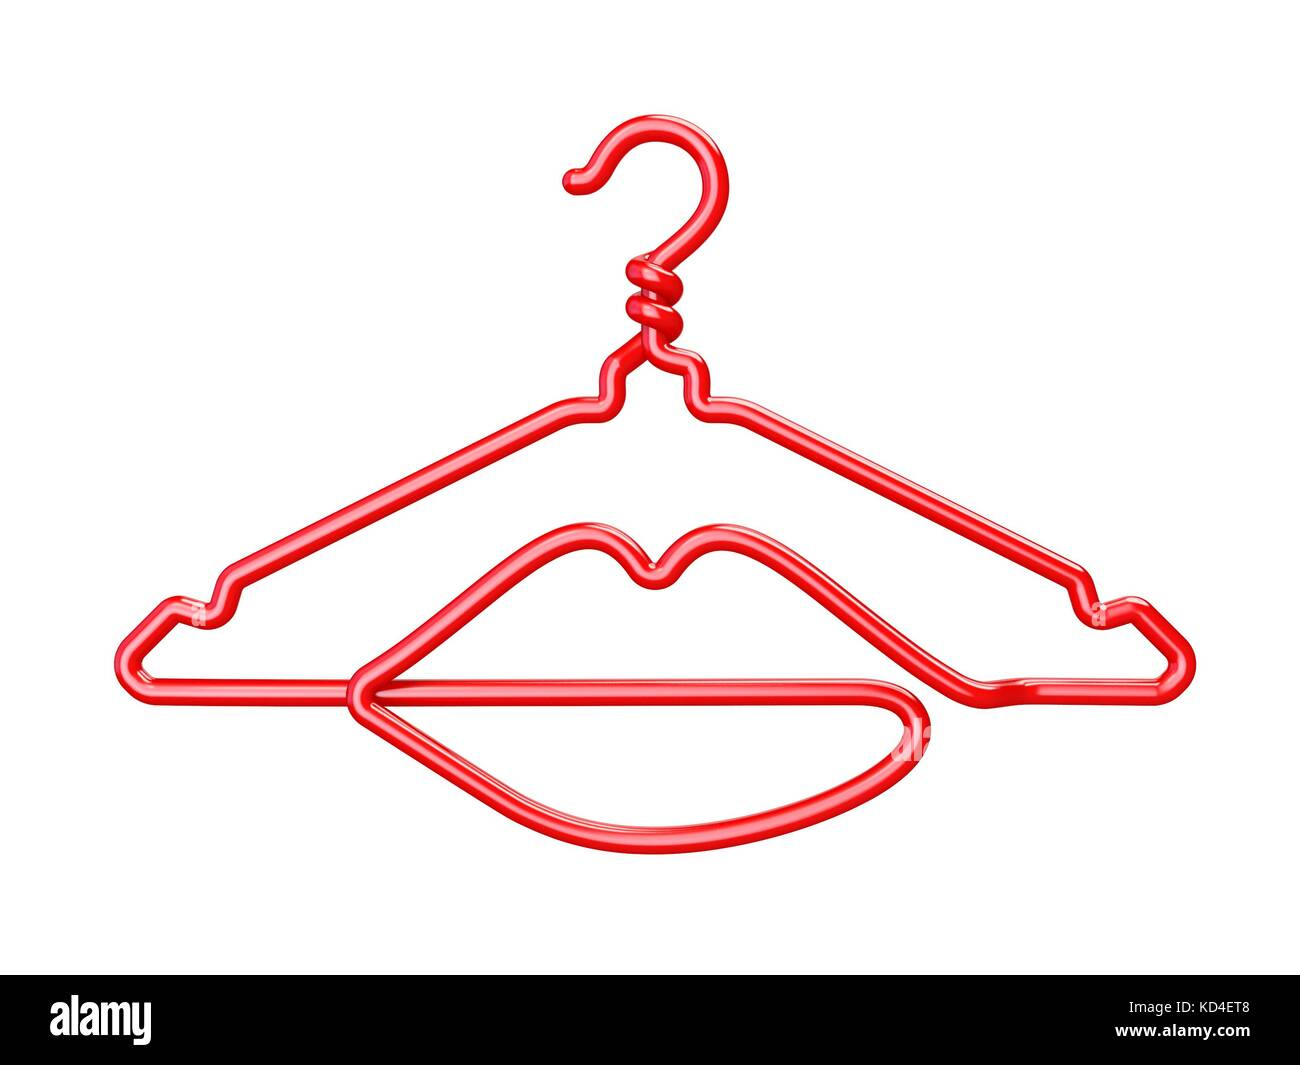 Red wire clothes hangers lips shaped 3d render illustration red wire clothes hangers lips shaped 3d render illustration isolated on white background biocorpaavc